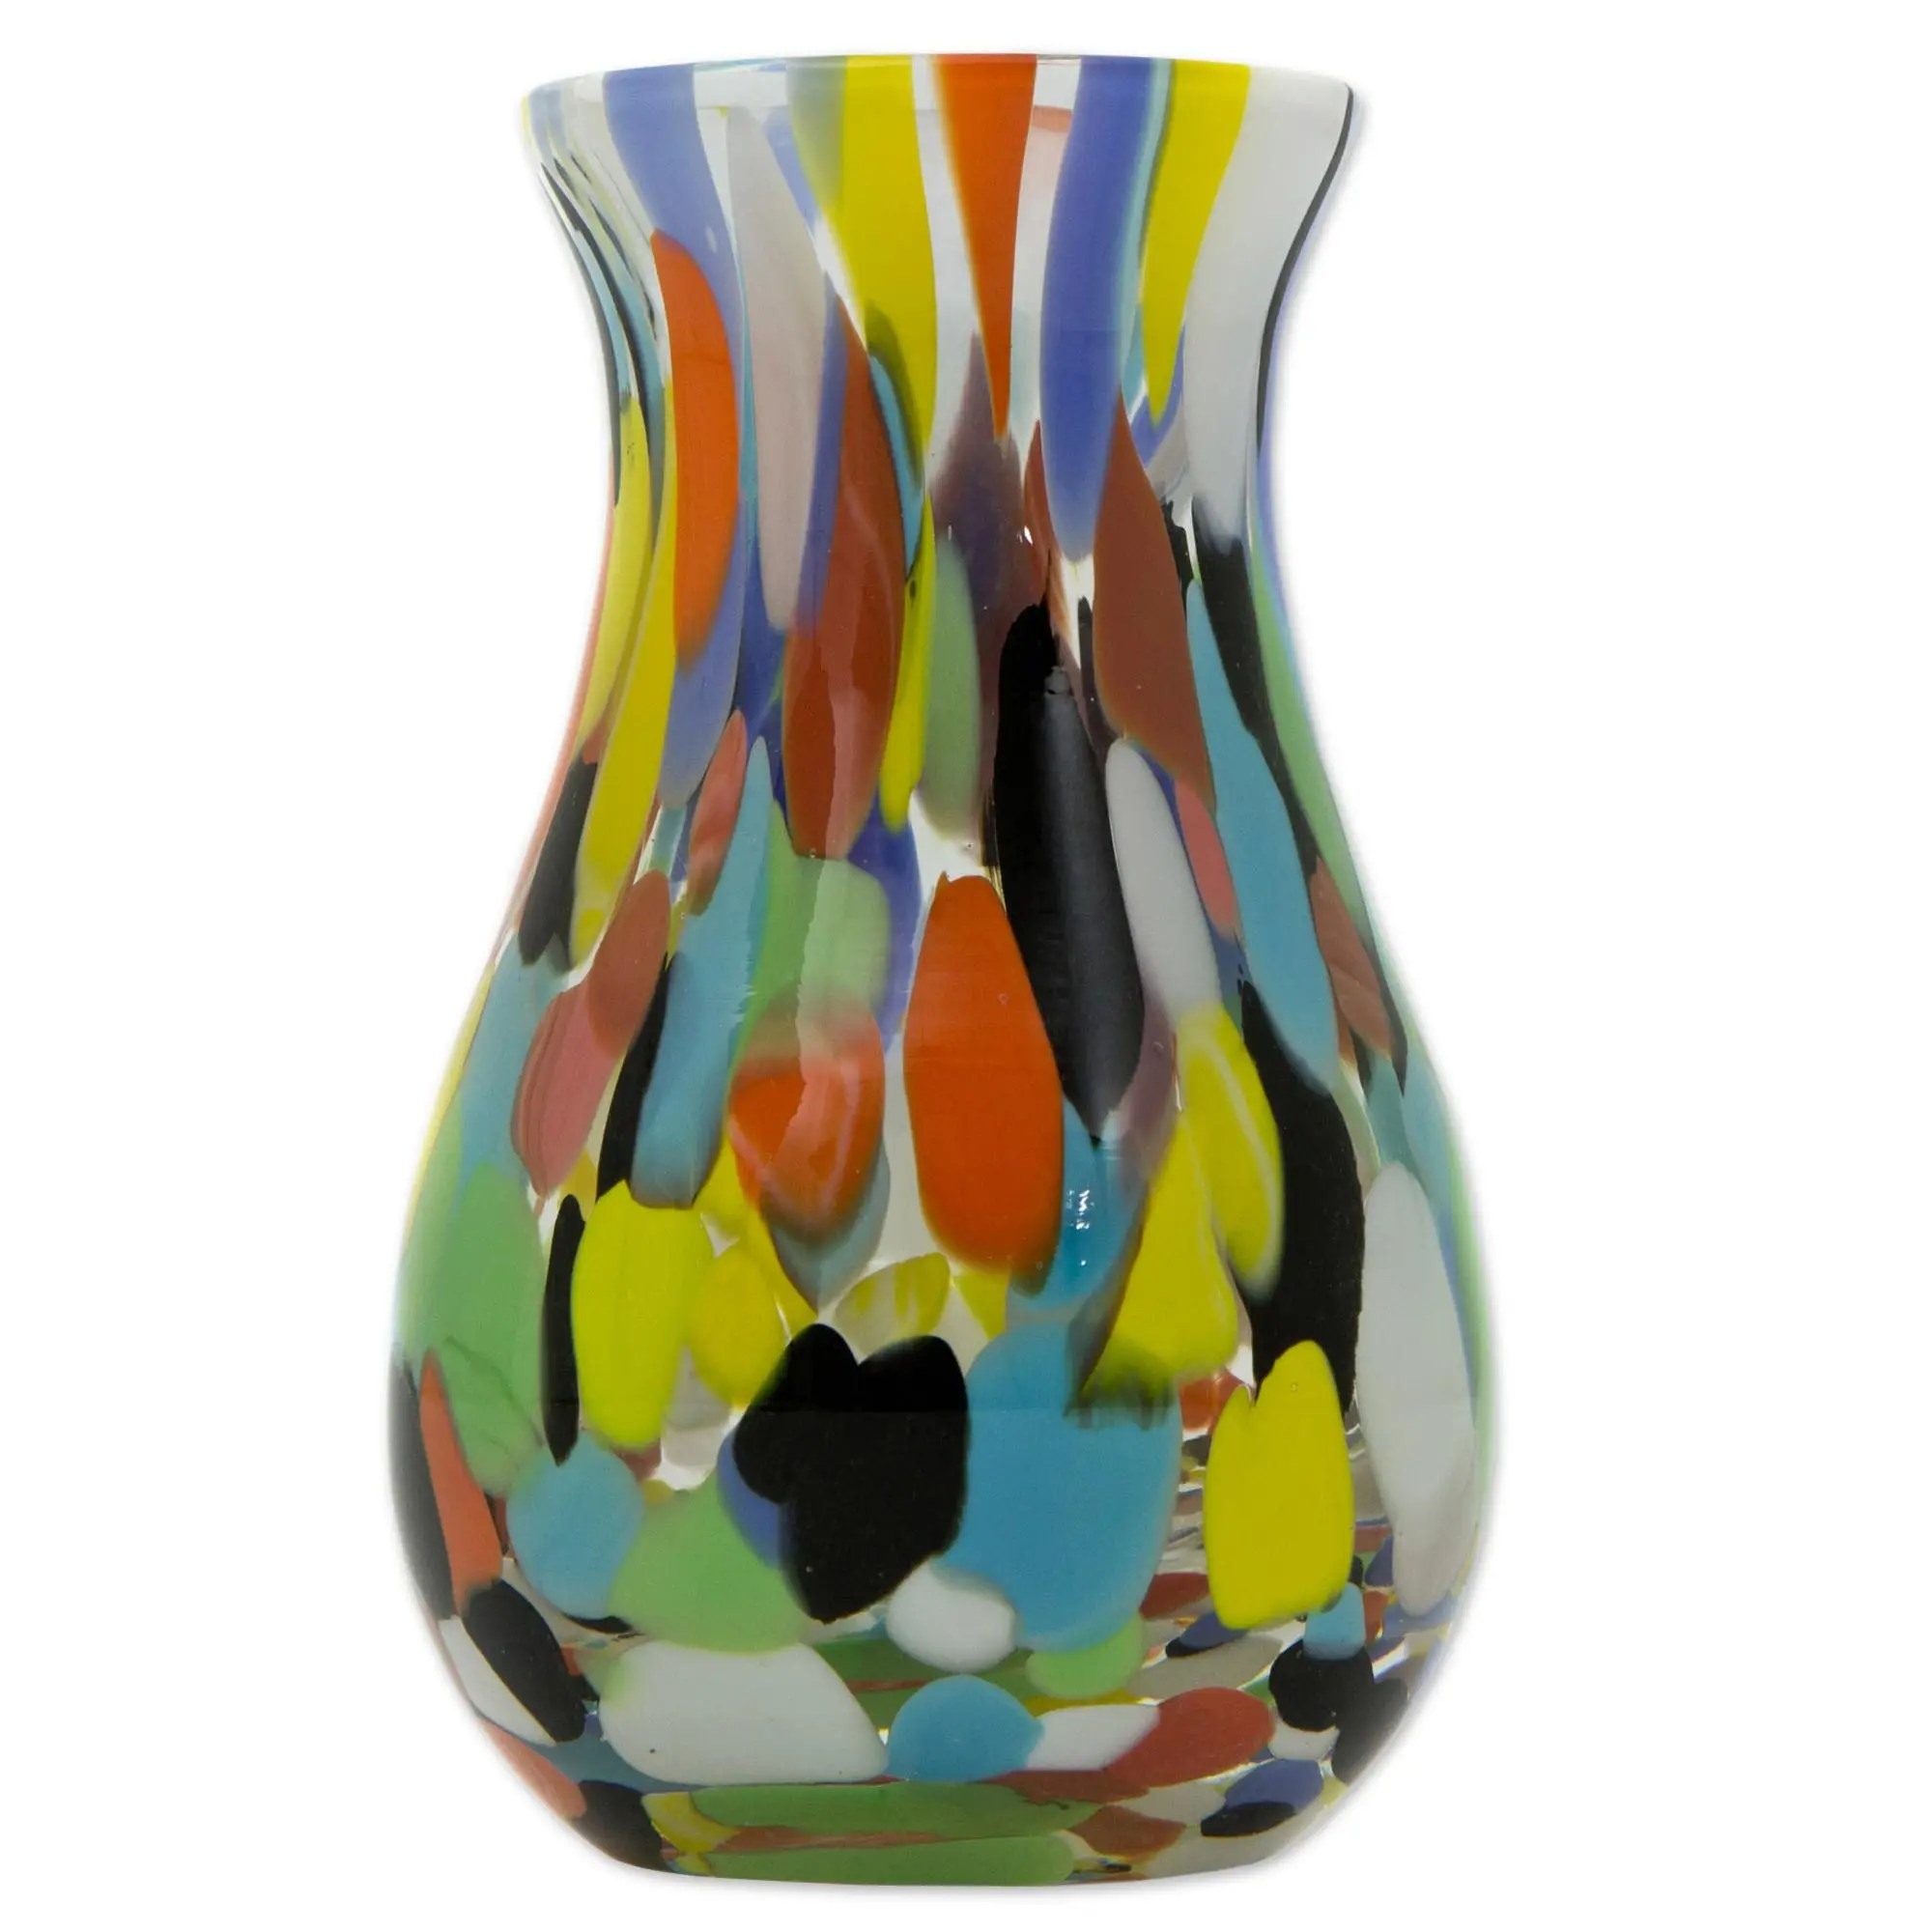 Vase De Murano Hand Blown Multi Colored Murano Inspired Art Glass Vase Impressionist Spring